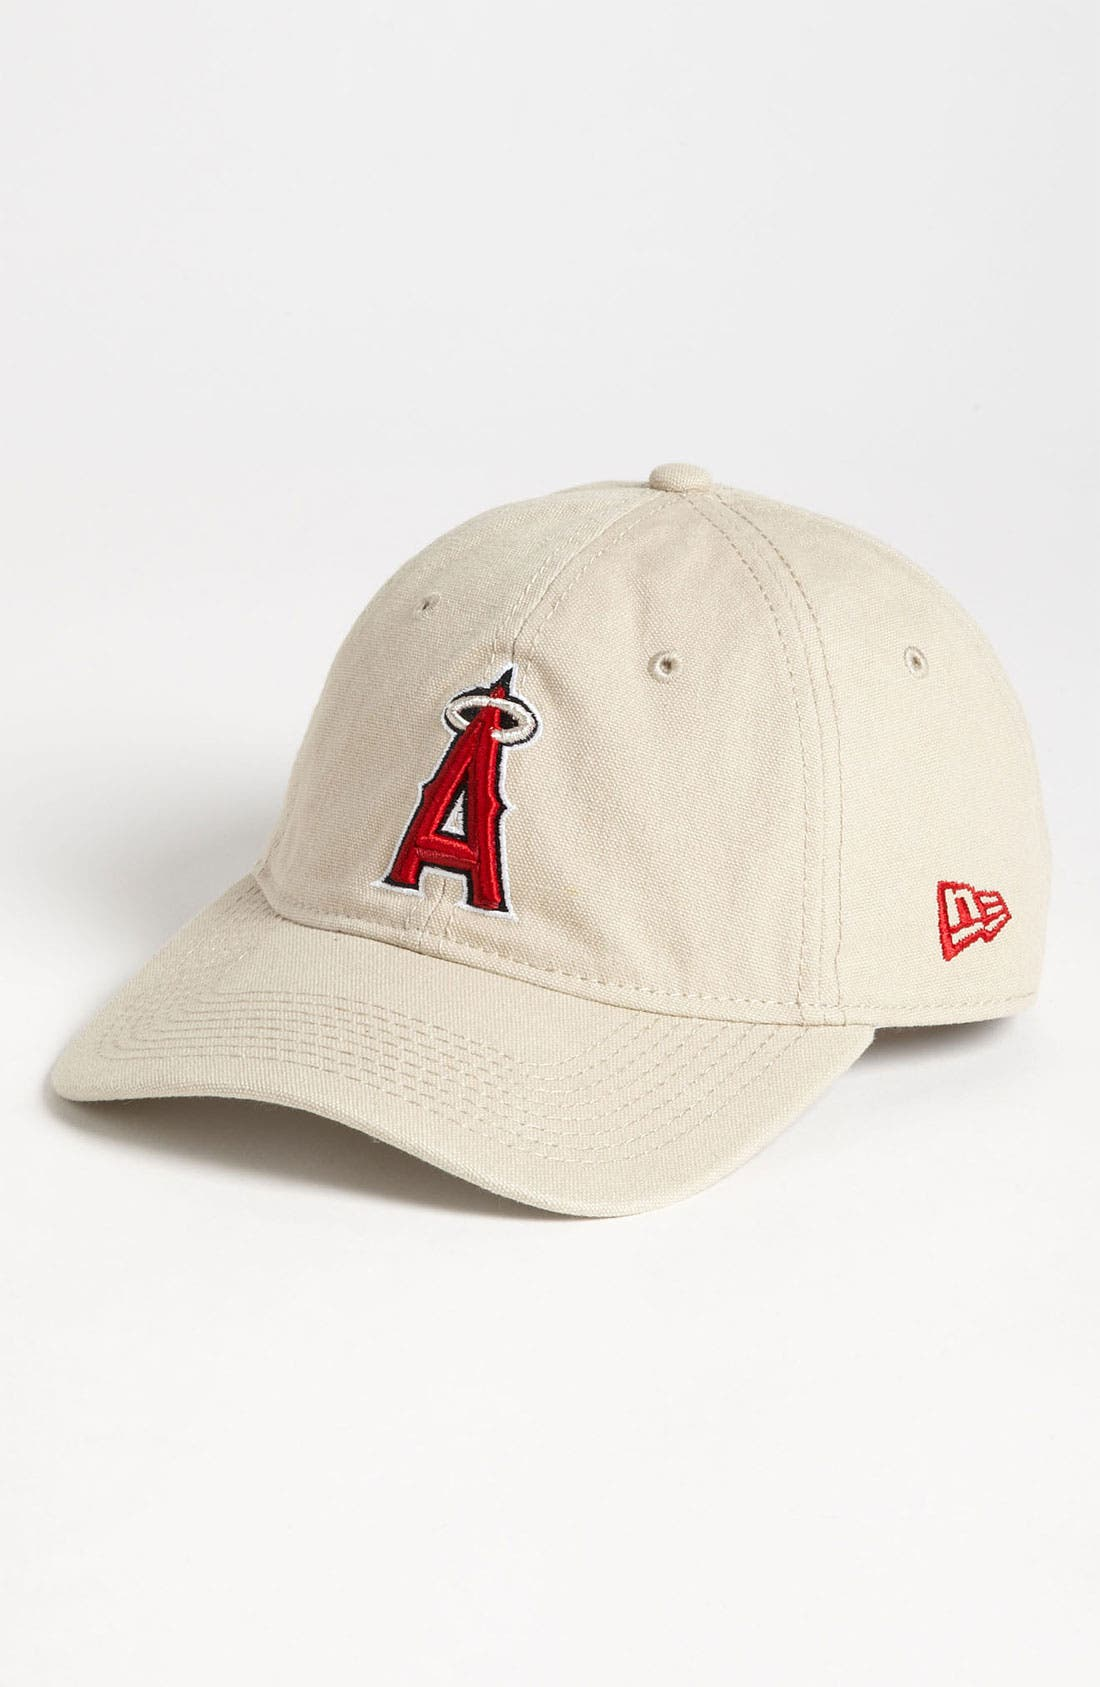 Main Image - New Era Cap 'Shoreline - Los Angeles Angels of Anaheim' Baseball Cap